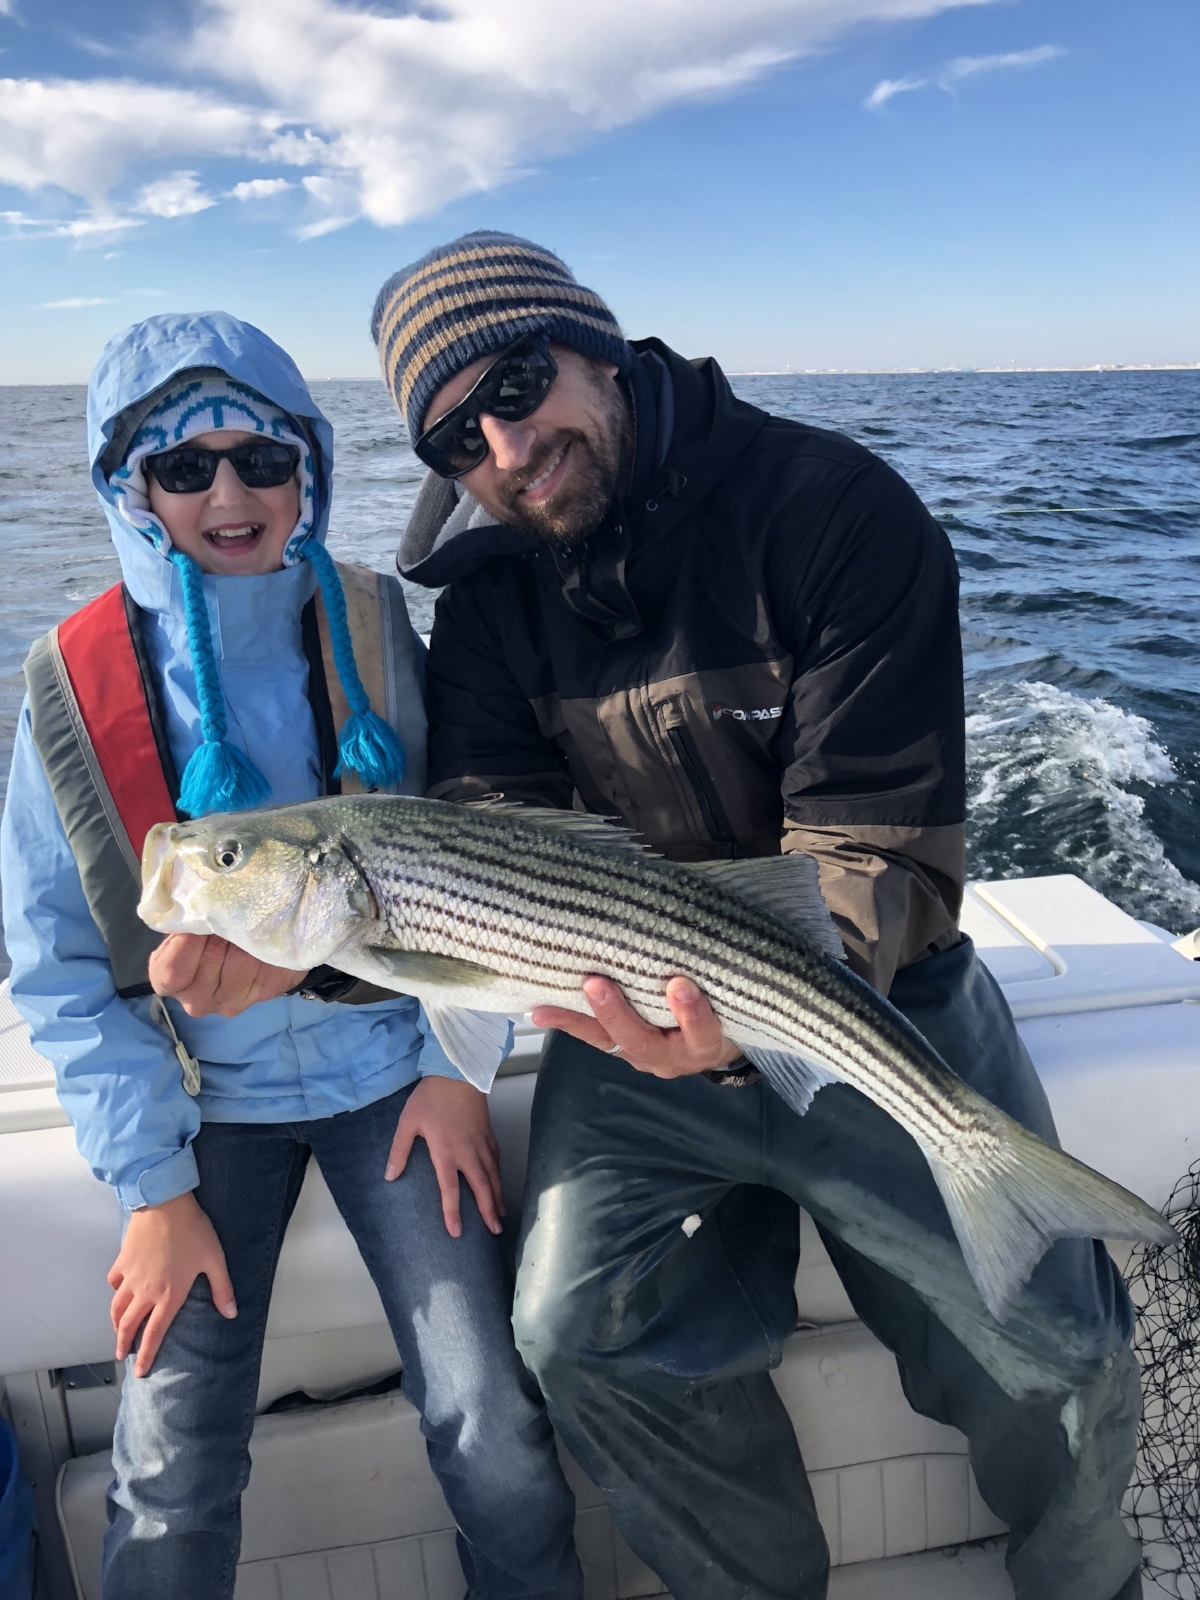 As a father, marine biology teacher, and fisherman, Dave Werner knows how valuable this fish is to our waters and local economy. Photo courtesy of Werner.